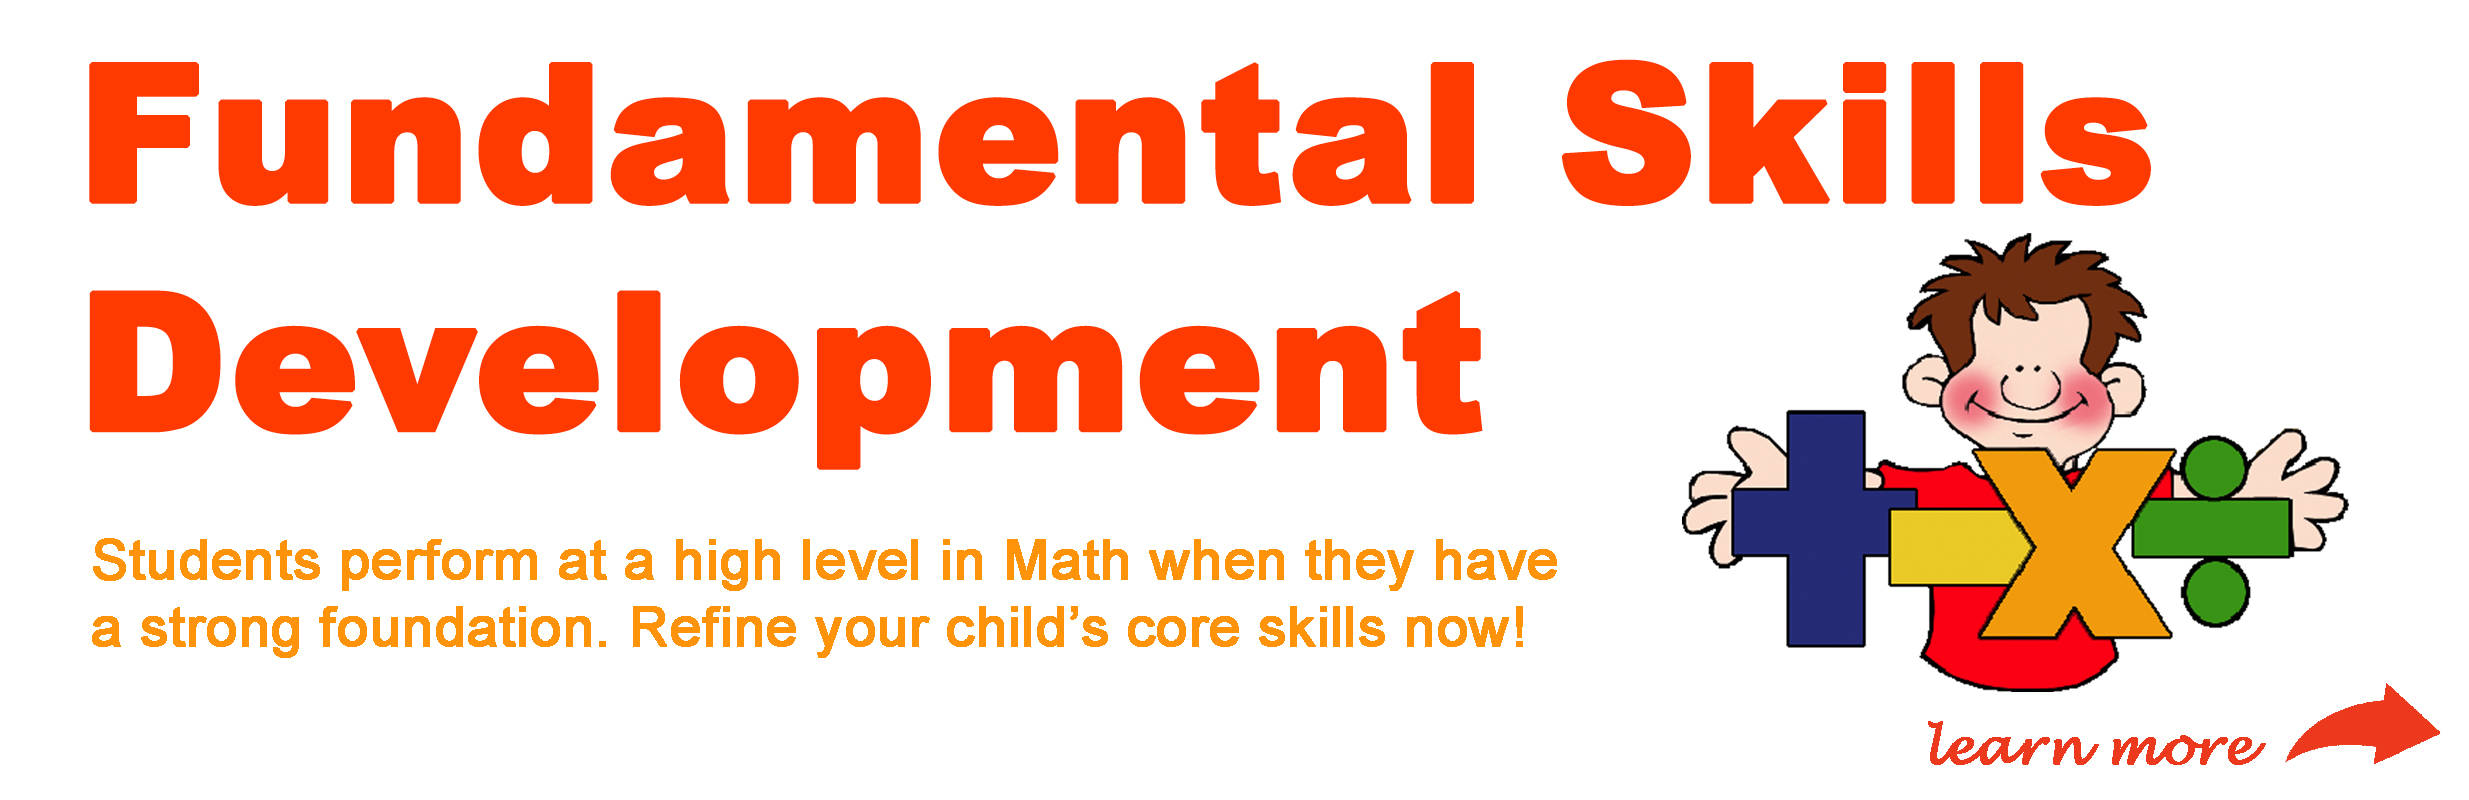 Fundamental Skills Development